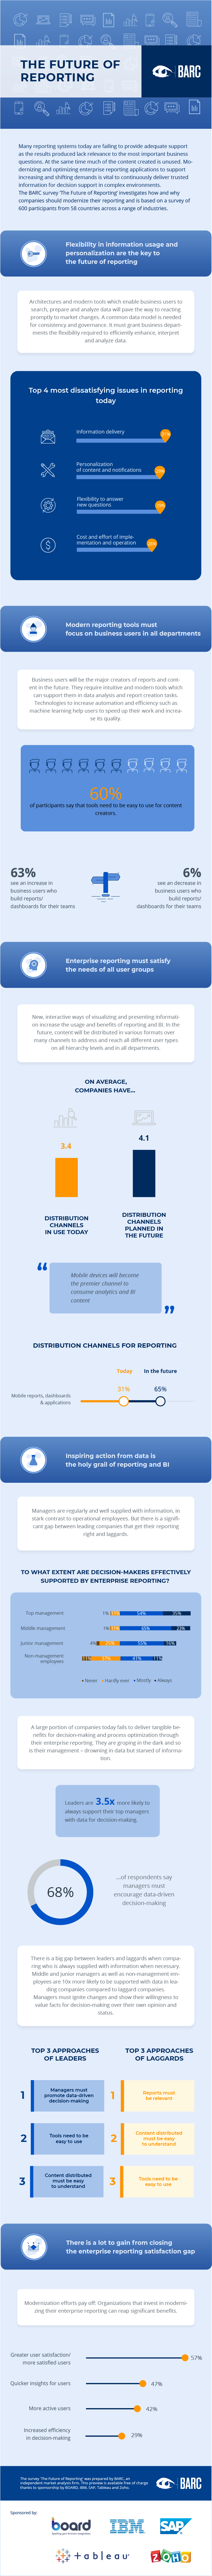 Future of Reporting Infographic